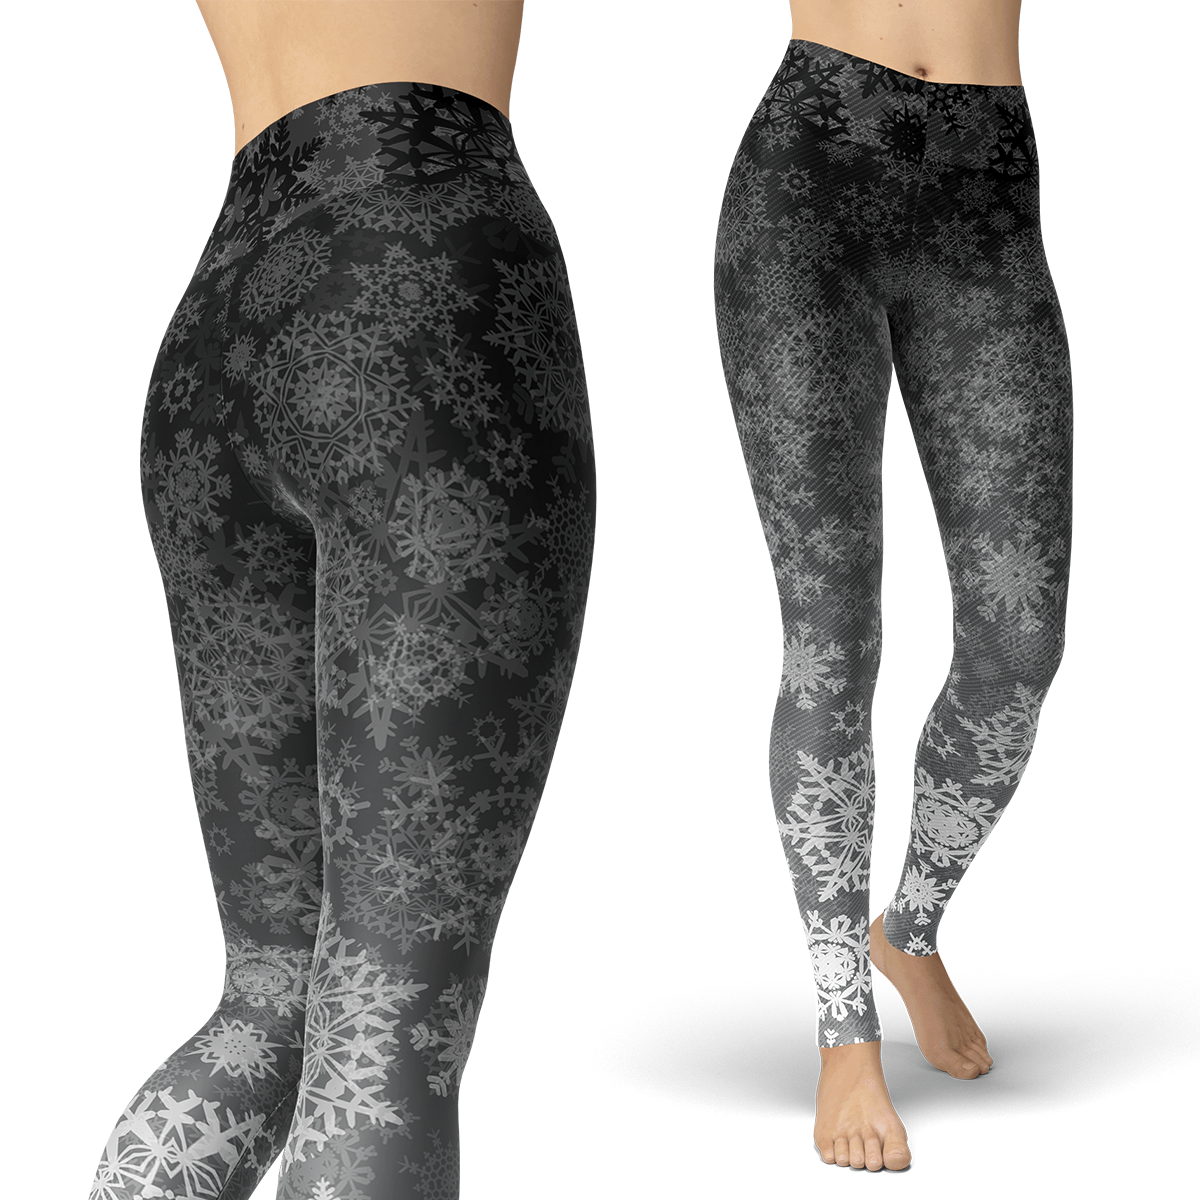 Grey Gradient Snow Leggings - Powderaddicts